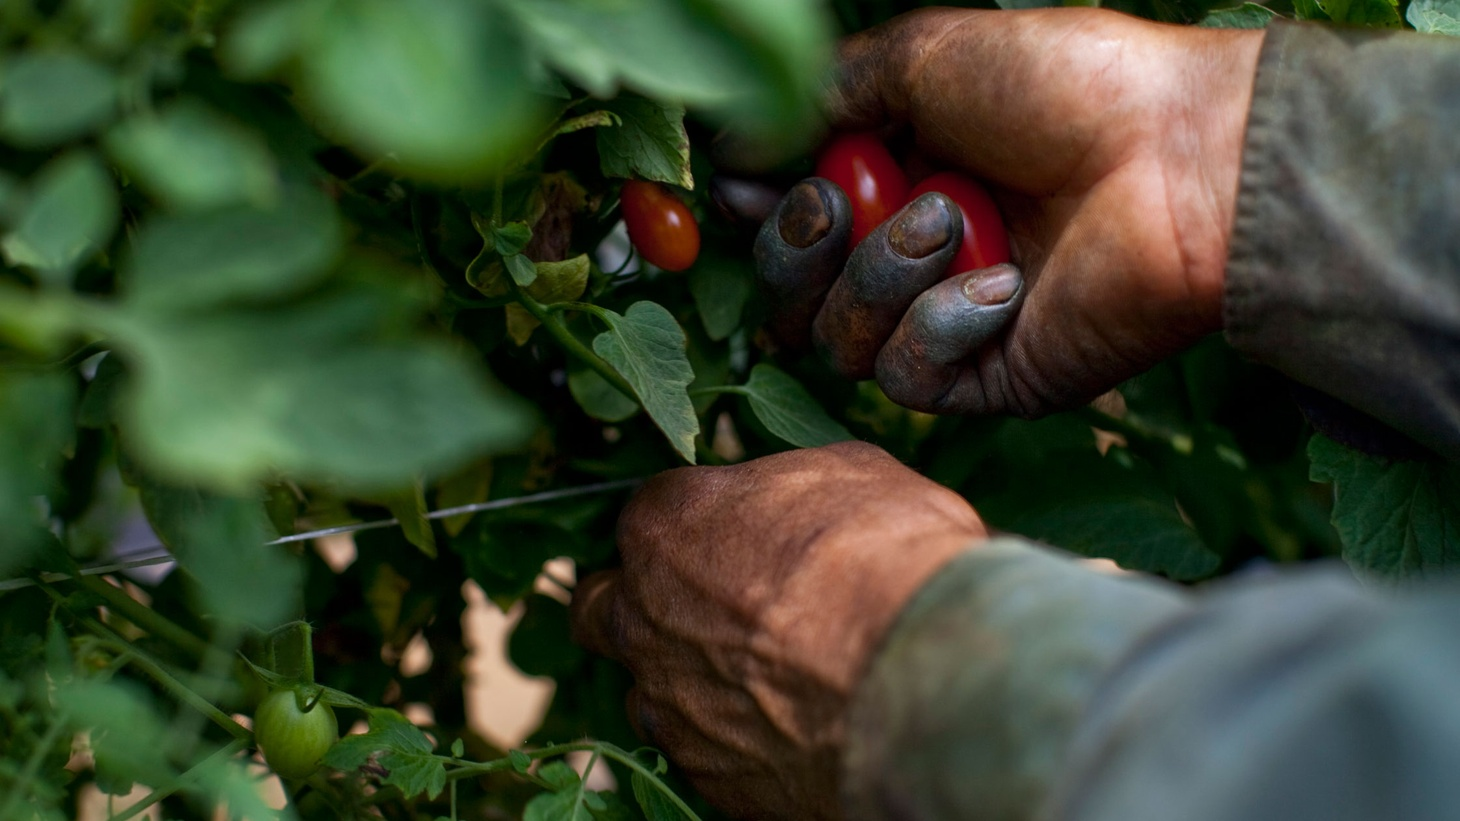 Fruits and vegetables from Mexico are cheap and plentiful in the United States, but a recent investigation shows Mexican agribusiness treating the produce better than the workers who grow it and bring in the harvest. Are Mexico's labor laws being enforced?